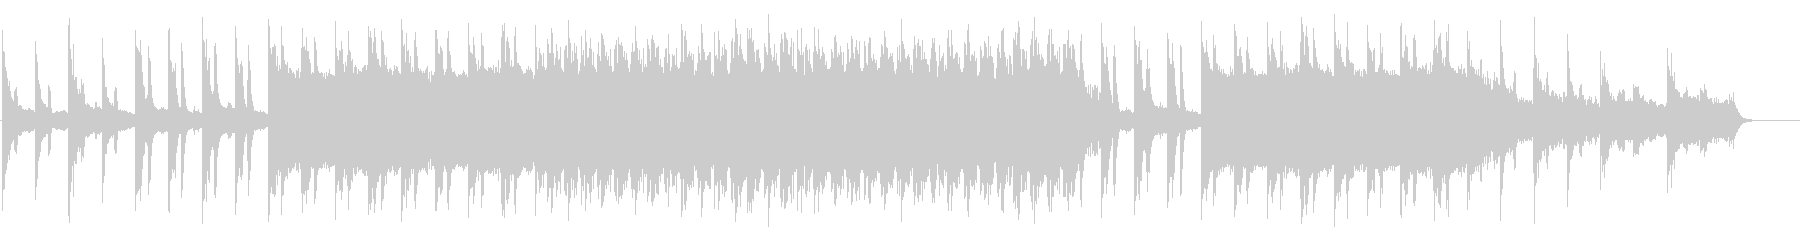 BGM with a mysterious and ethnic impression's unreproduced waveform